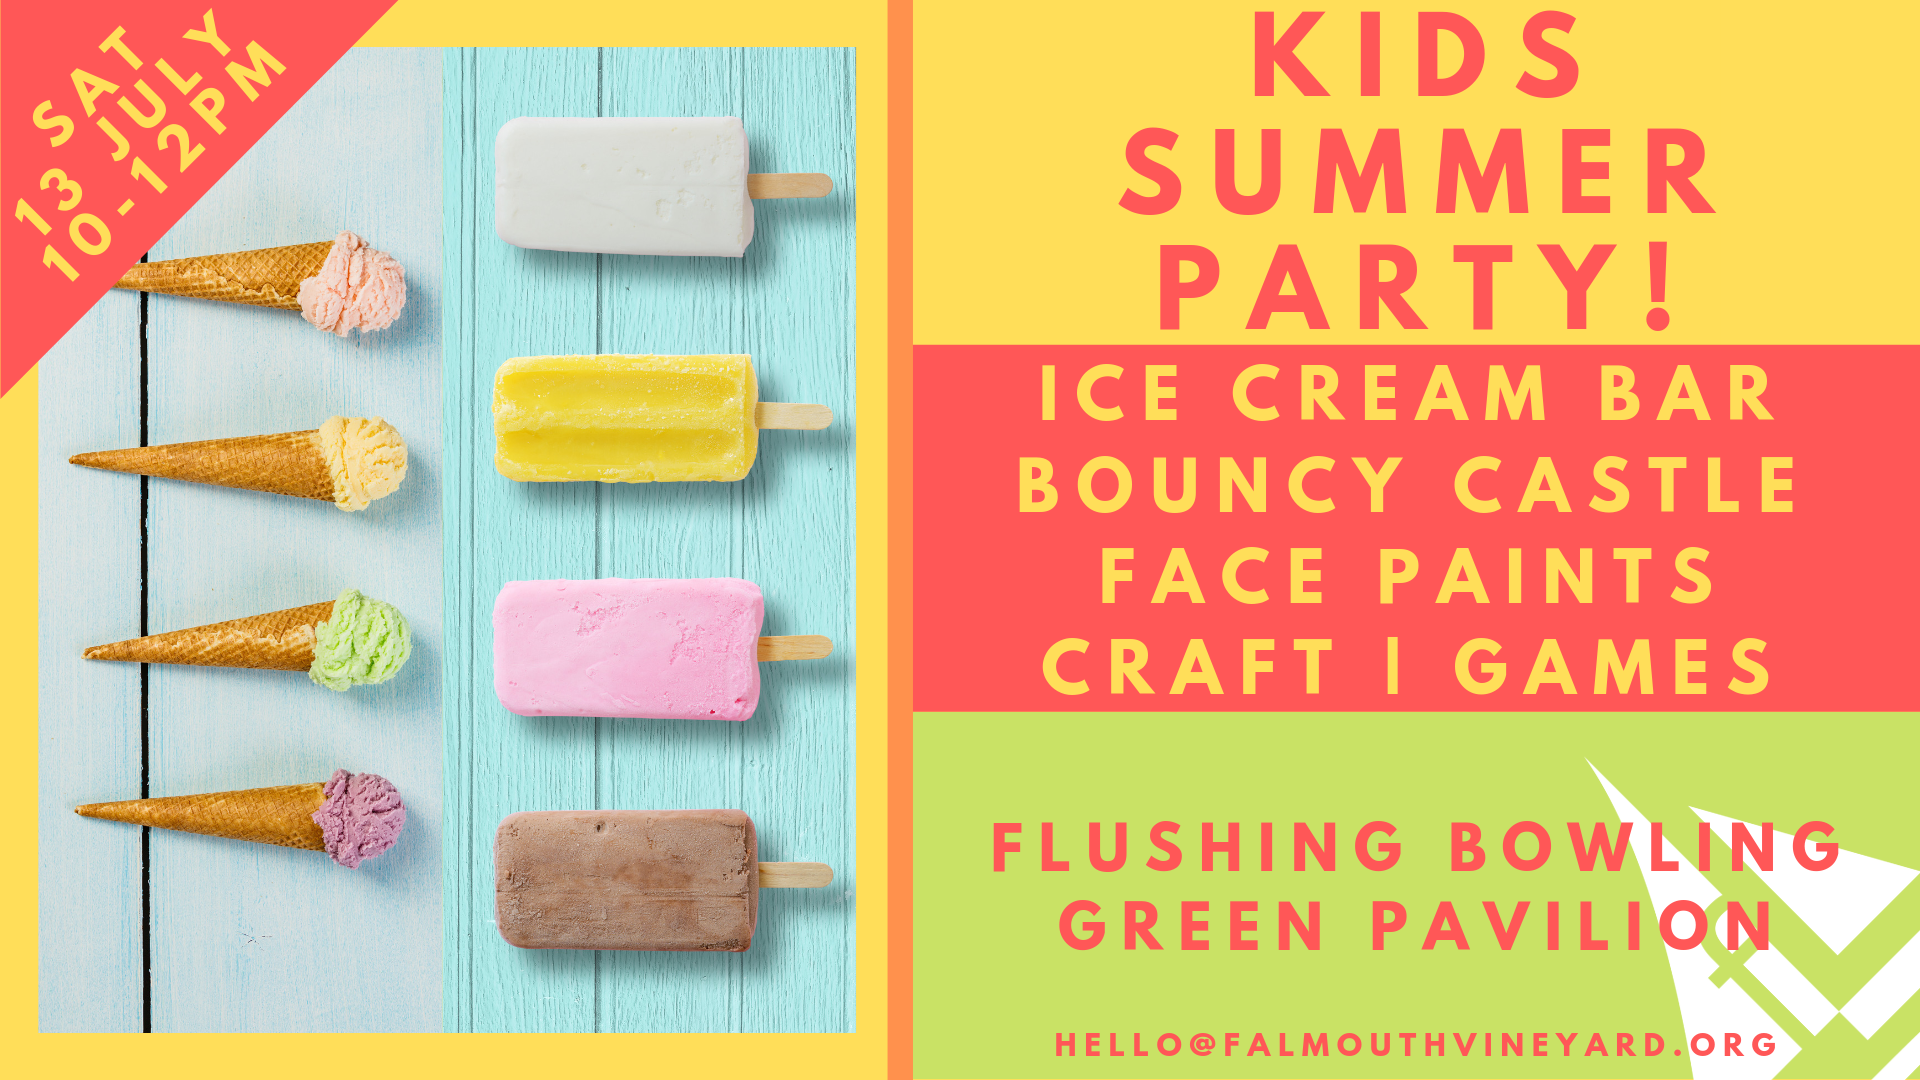 Falmouth Vineyard kids Summer Party 13.07.19